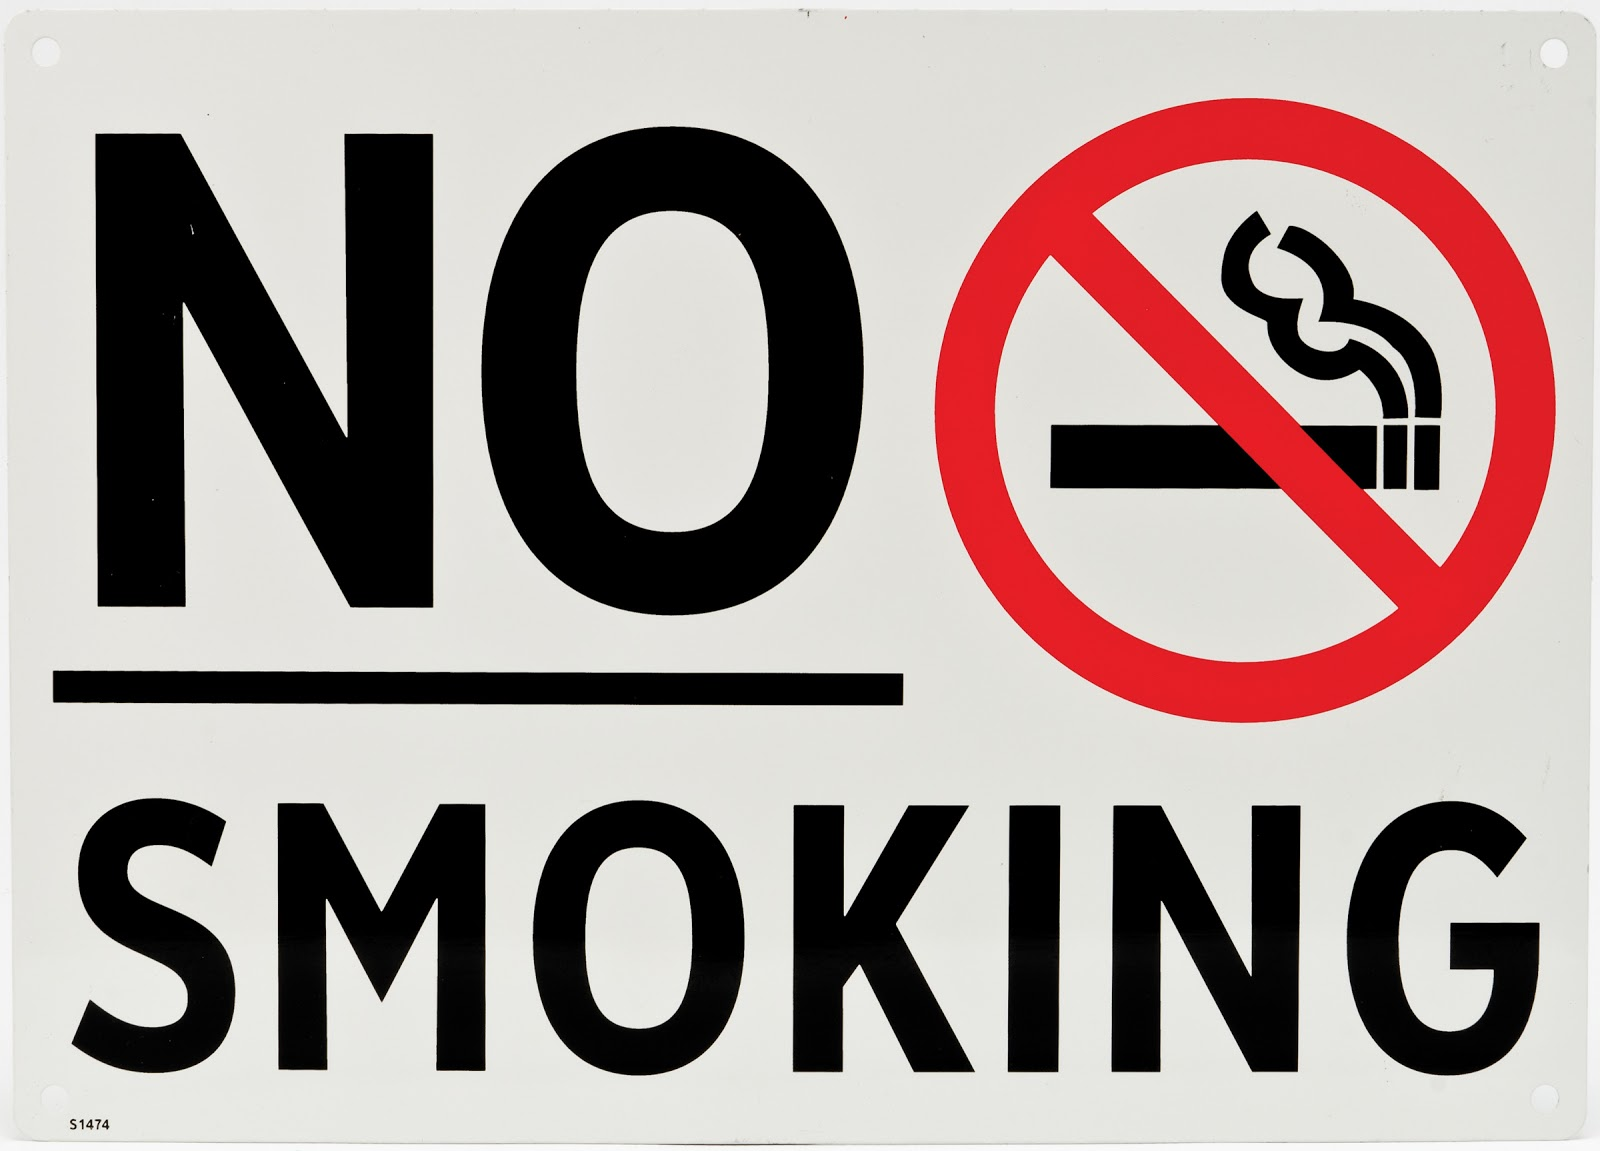 Keep Calm, No Drugs and No Smocking